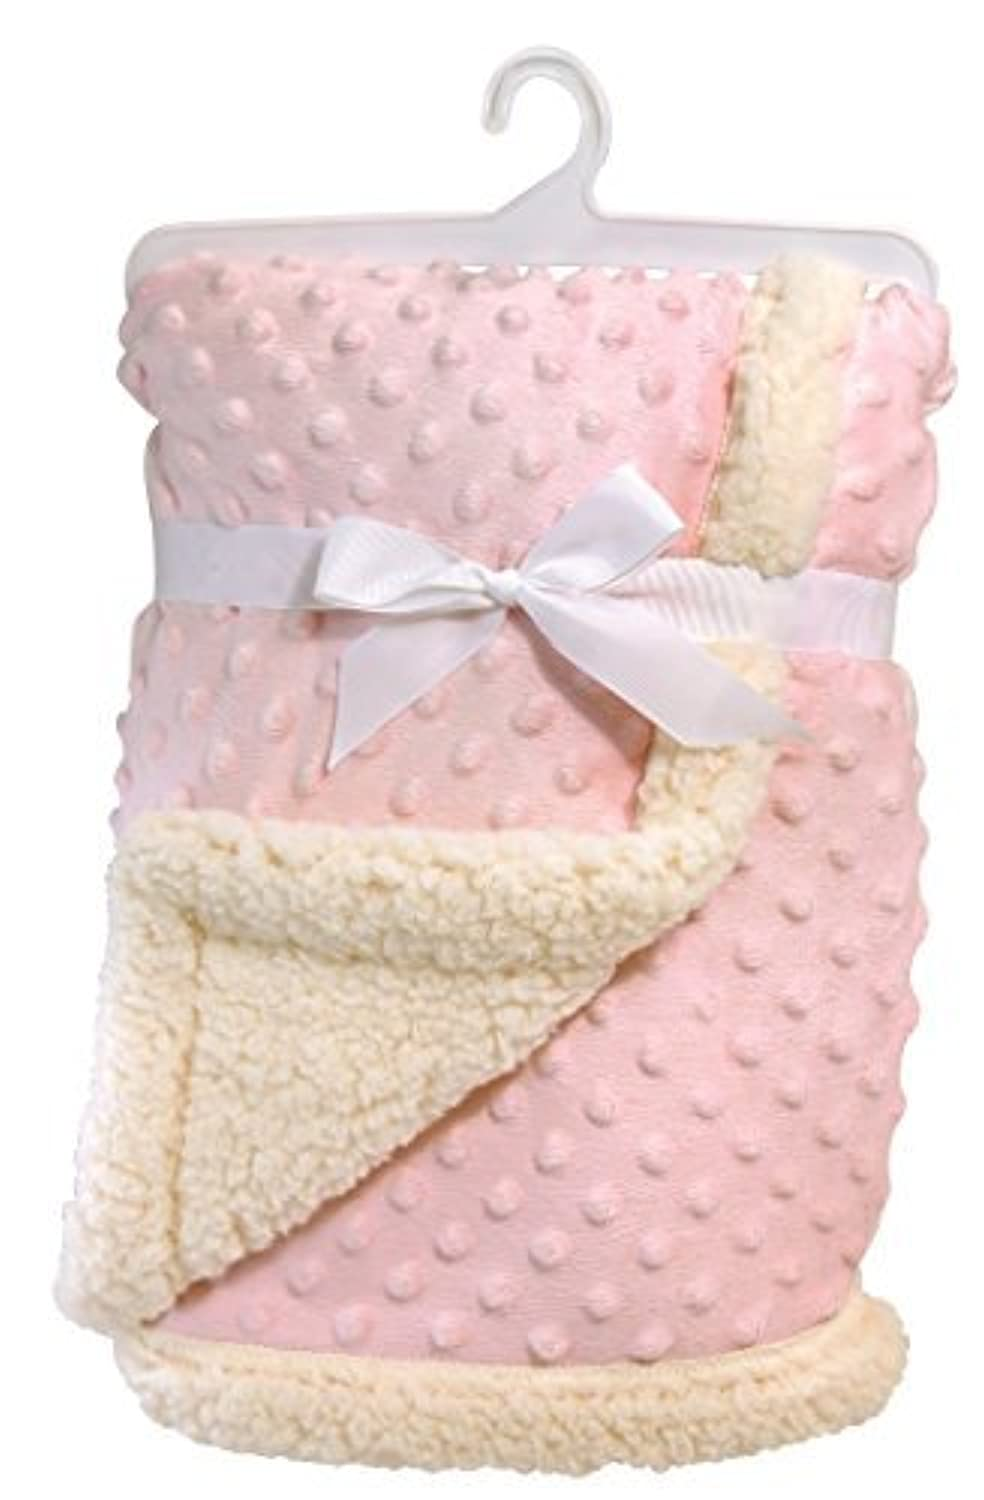 Stephan Baby Super-Soft Reversible Velour Plush or Sherpa Bumpy Blanket, Pink by Stephan Baby [並行輸入品]